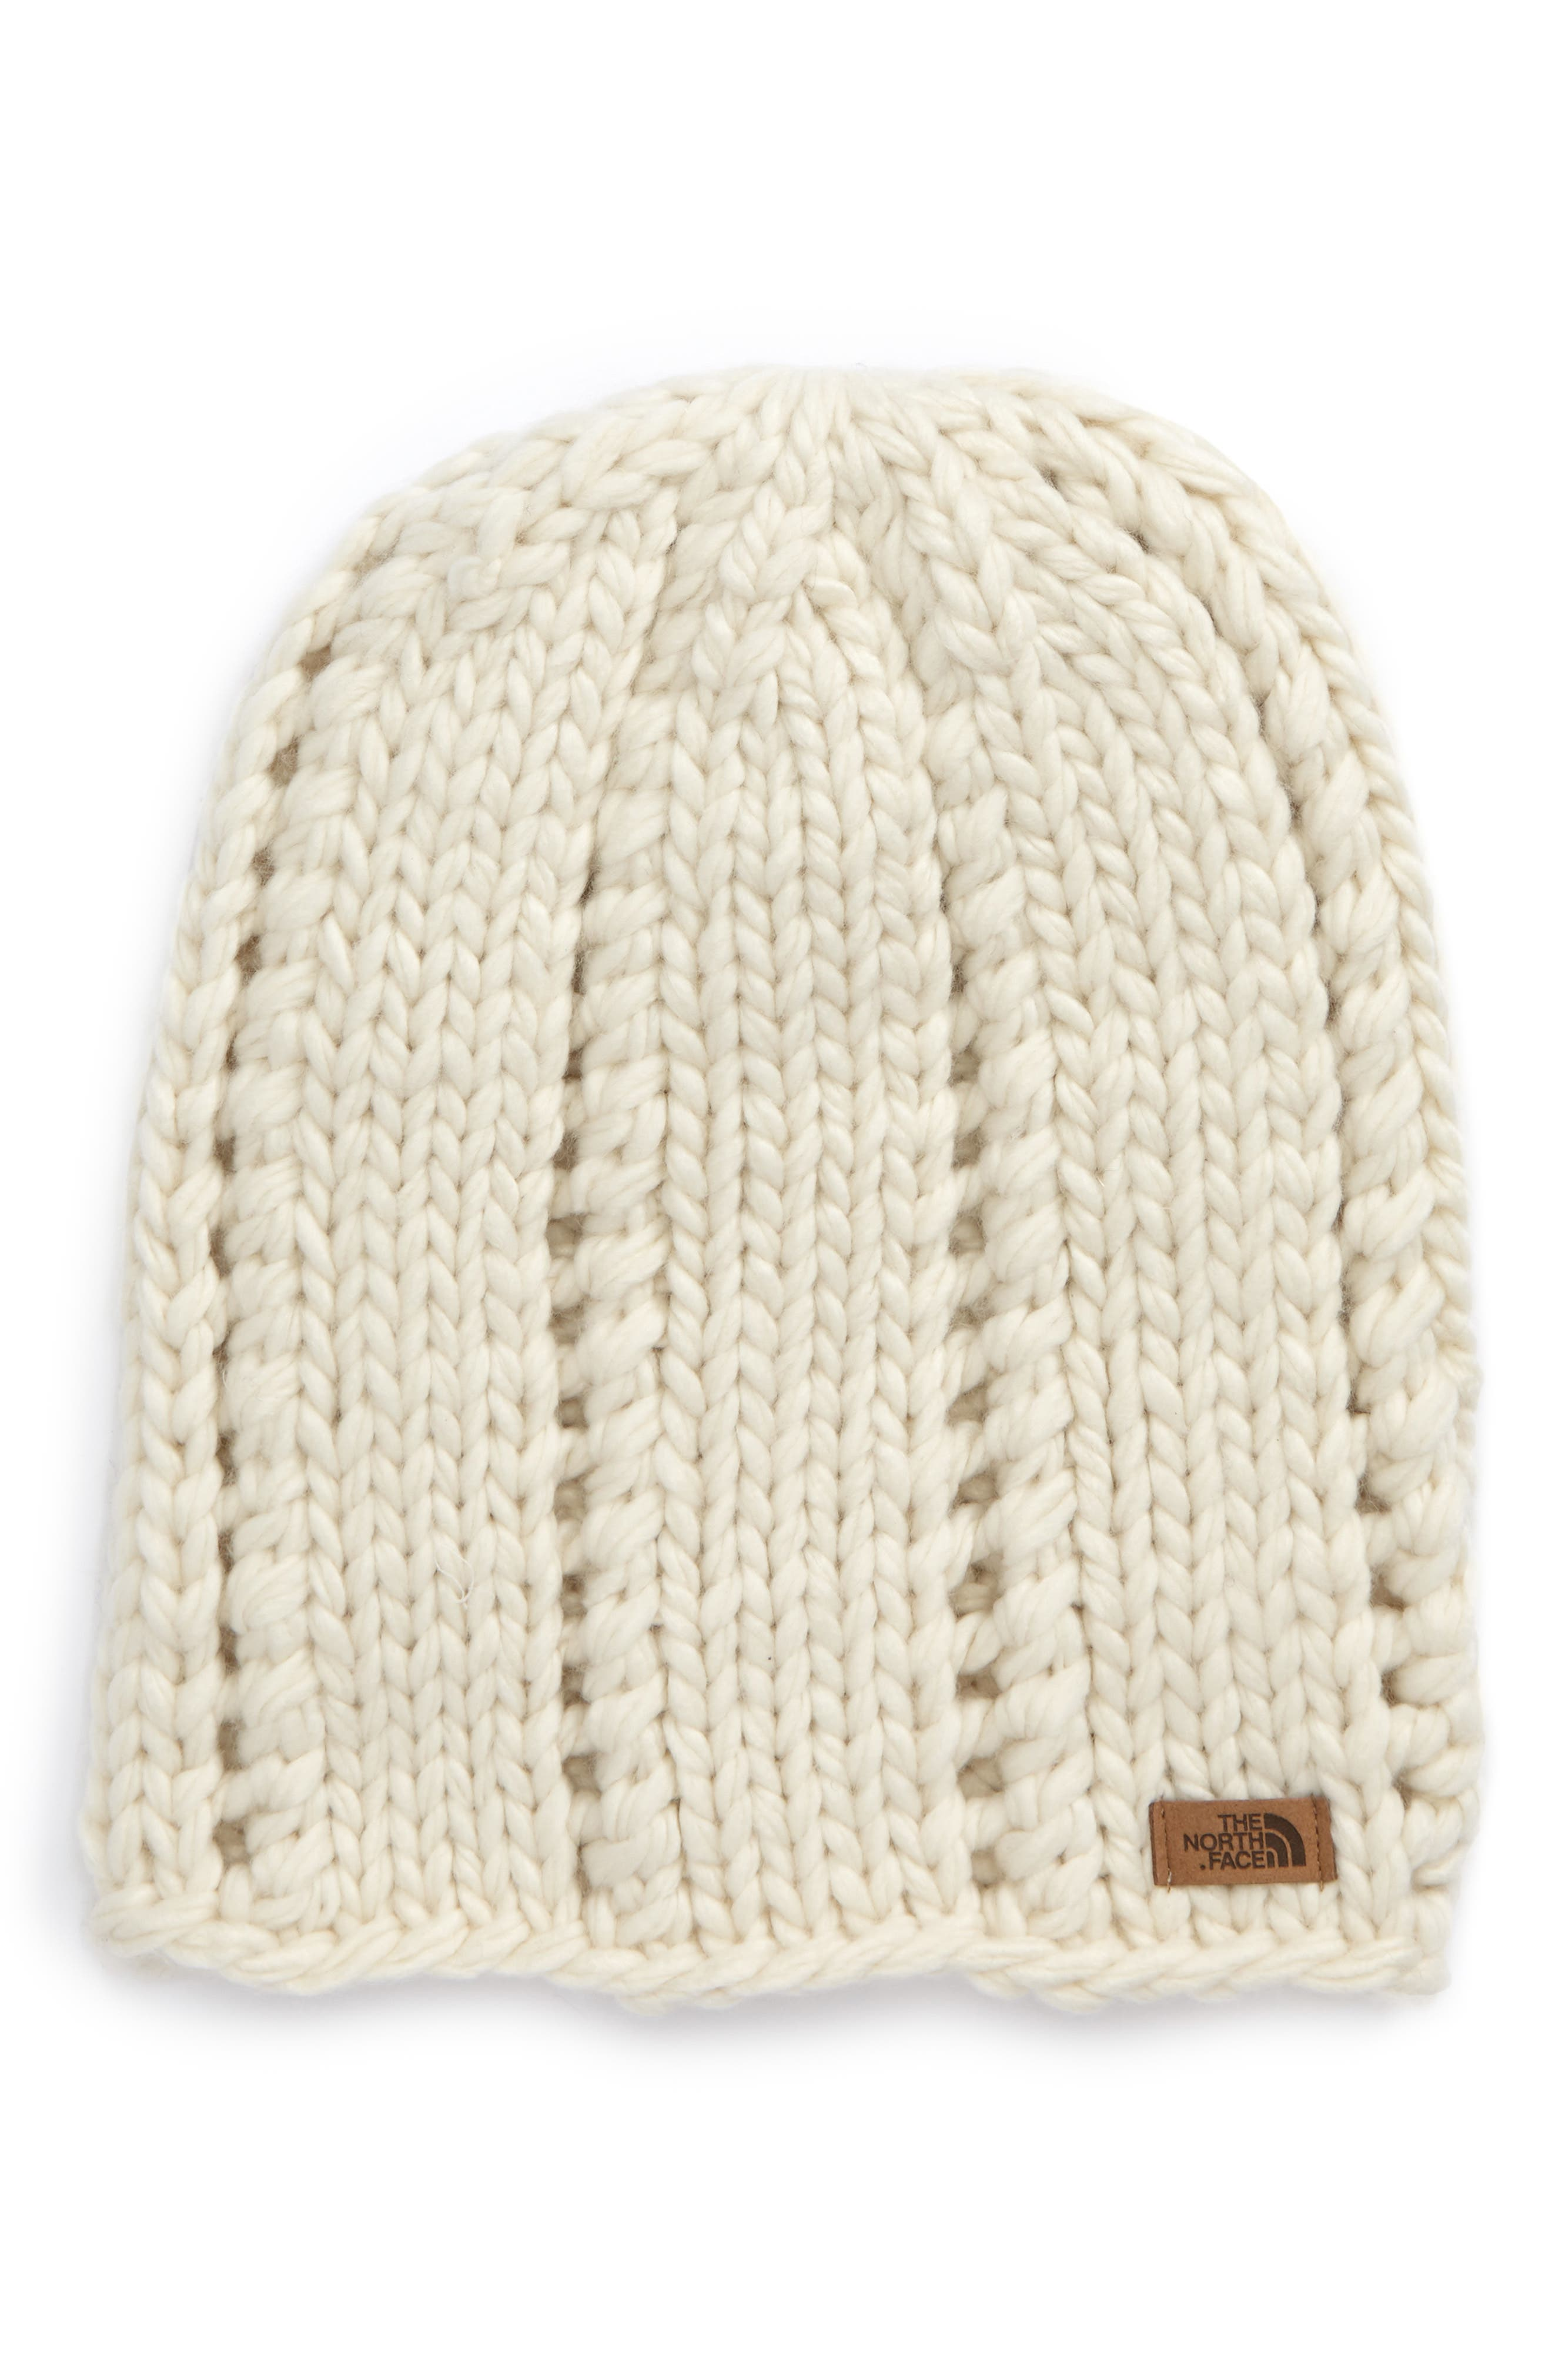 Alternate Image 1 Selected - The North Face Logo Beanie